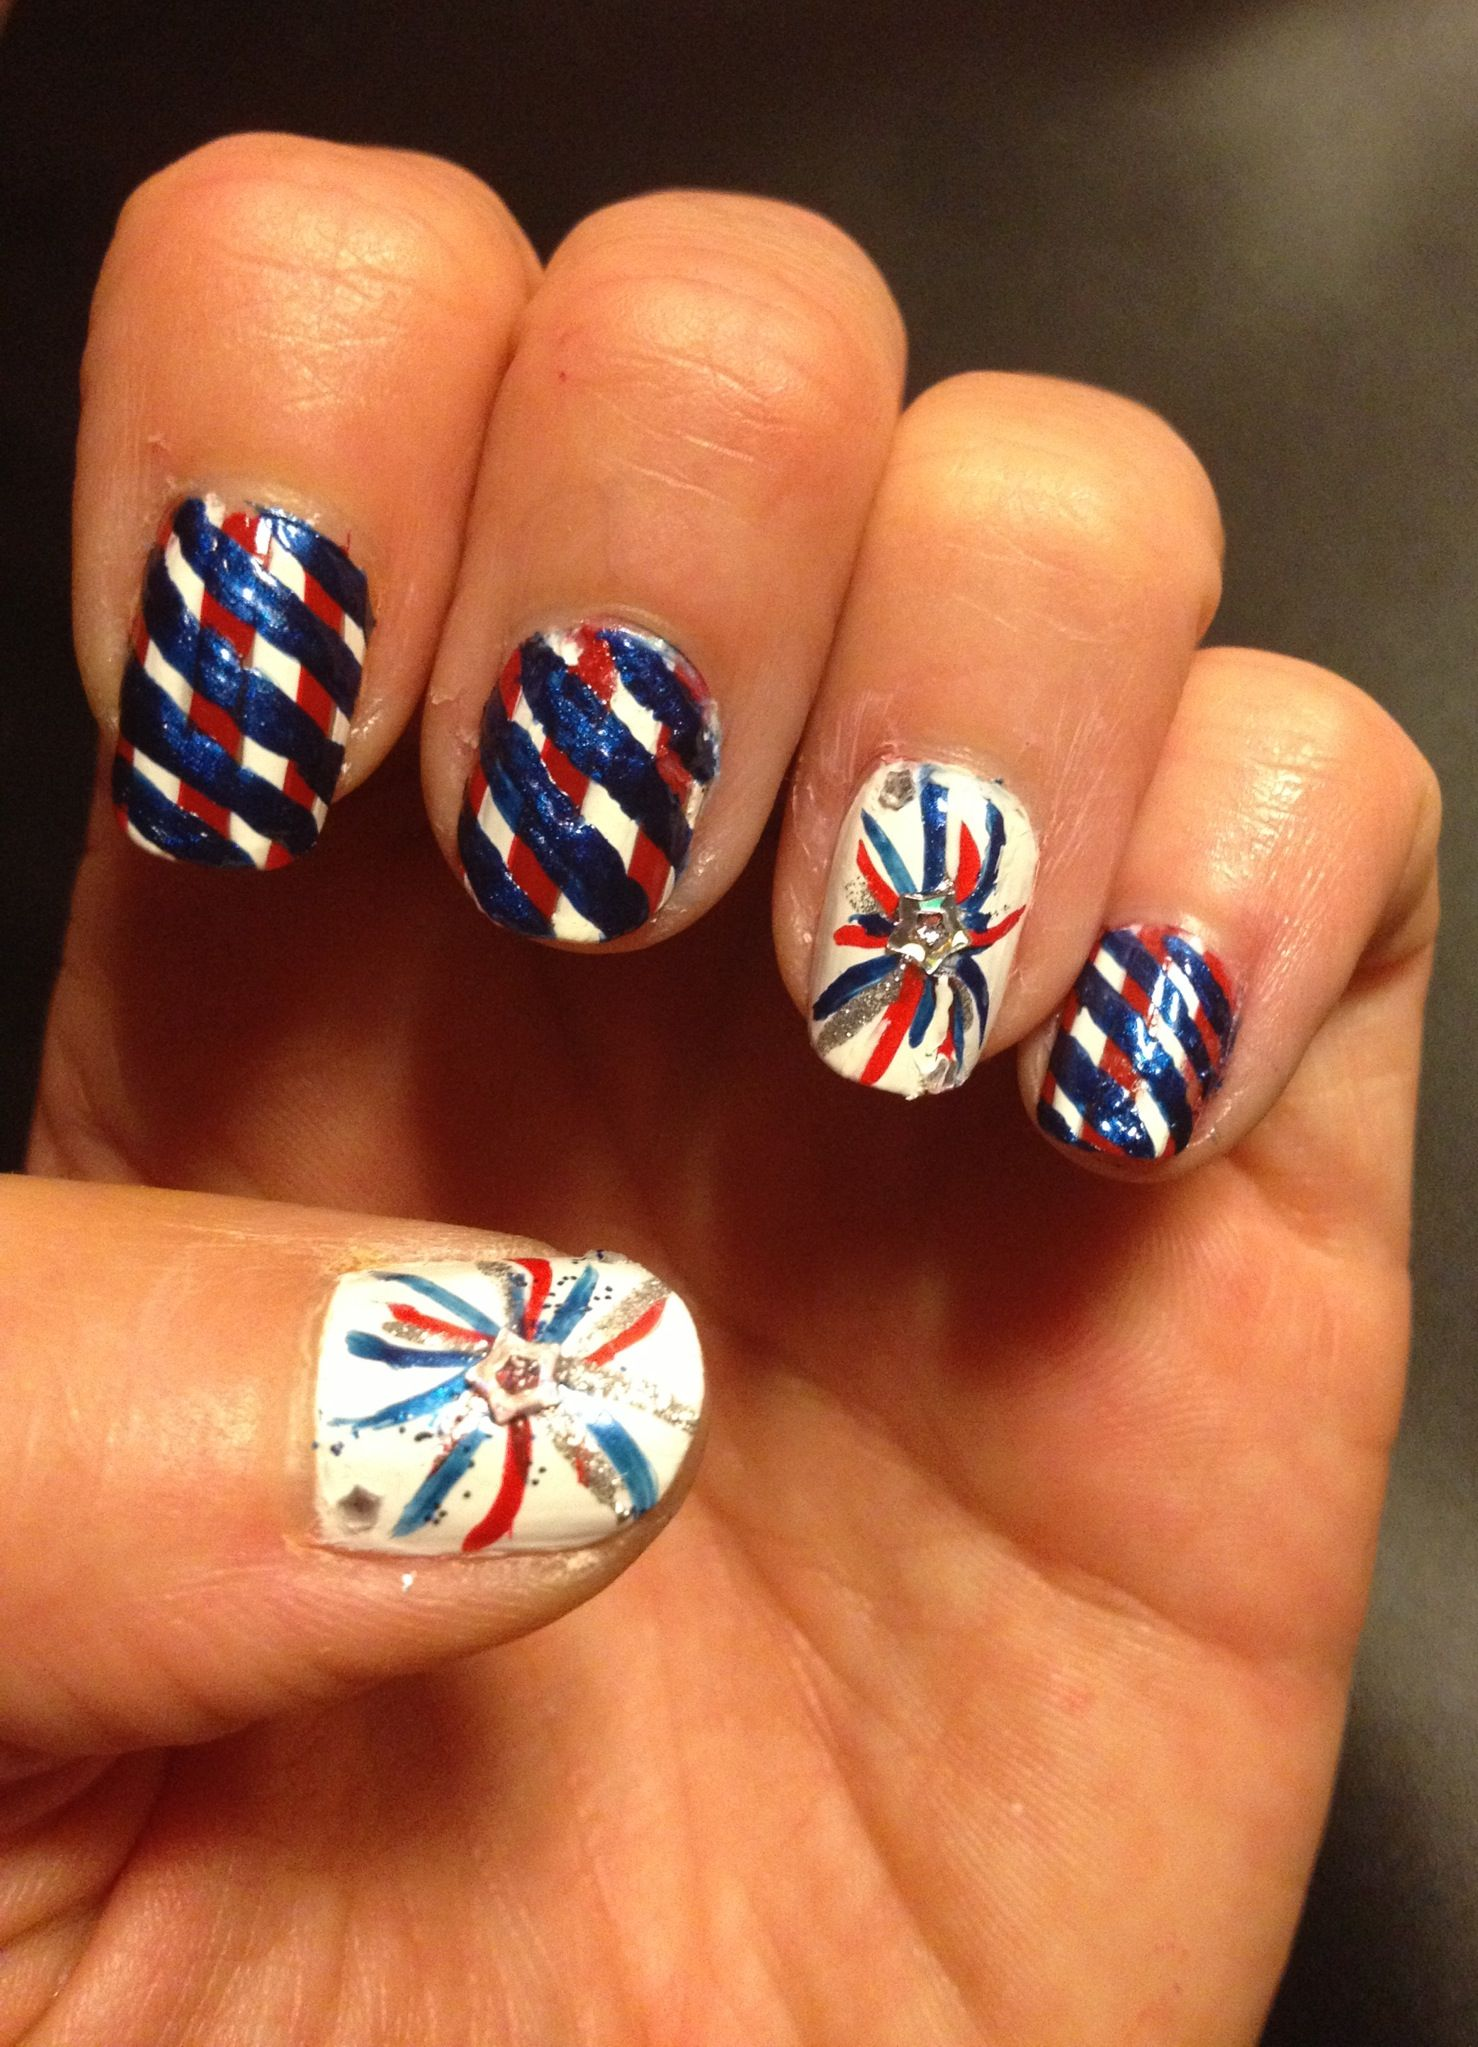 4th of july nail design nail art firework nail art design red of july nail art design ideas 4 ur break provides some information about interesting trends prinsesfo Gallery